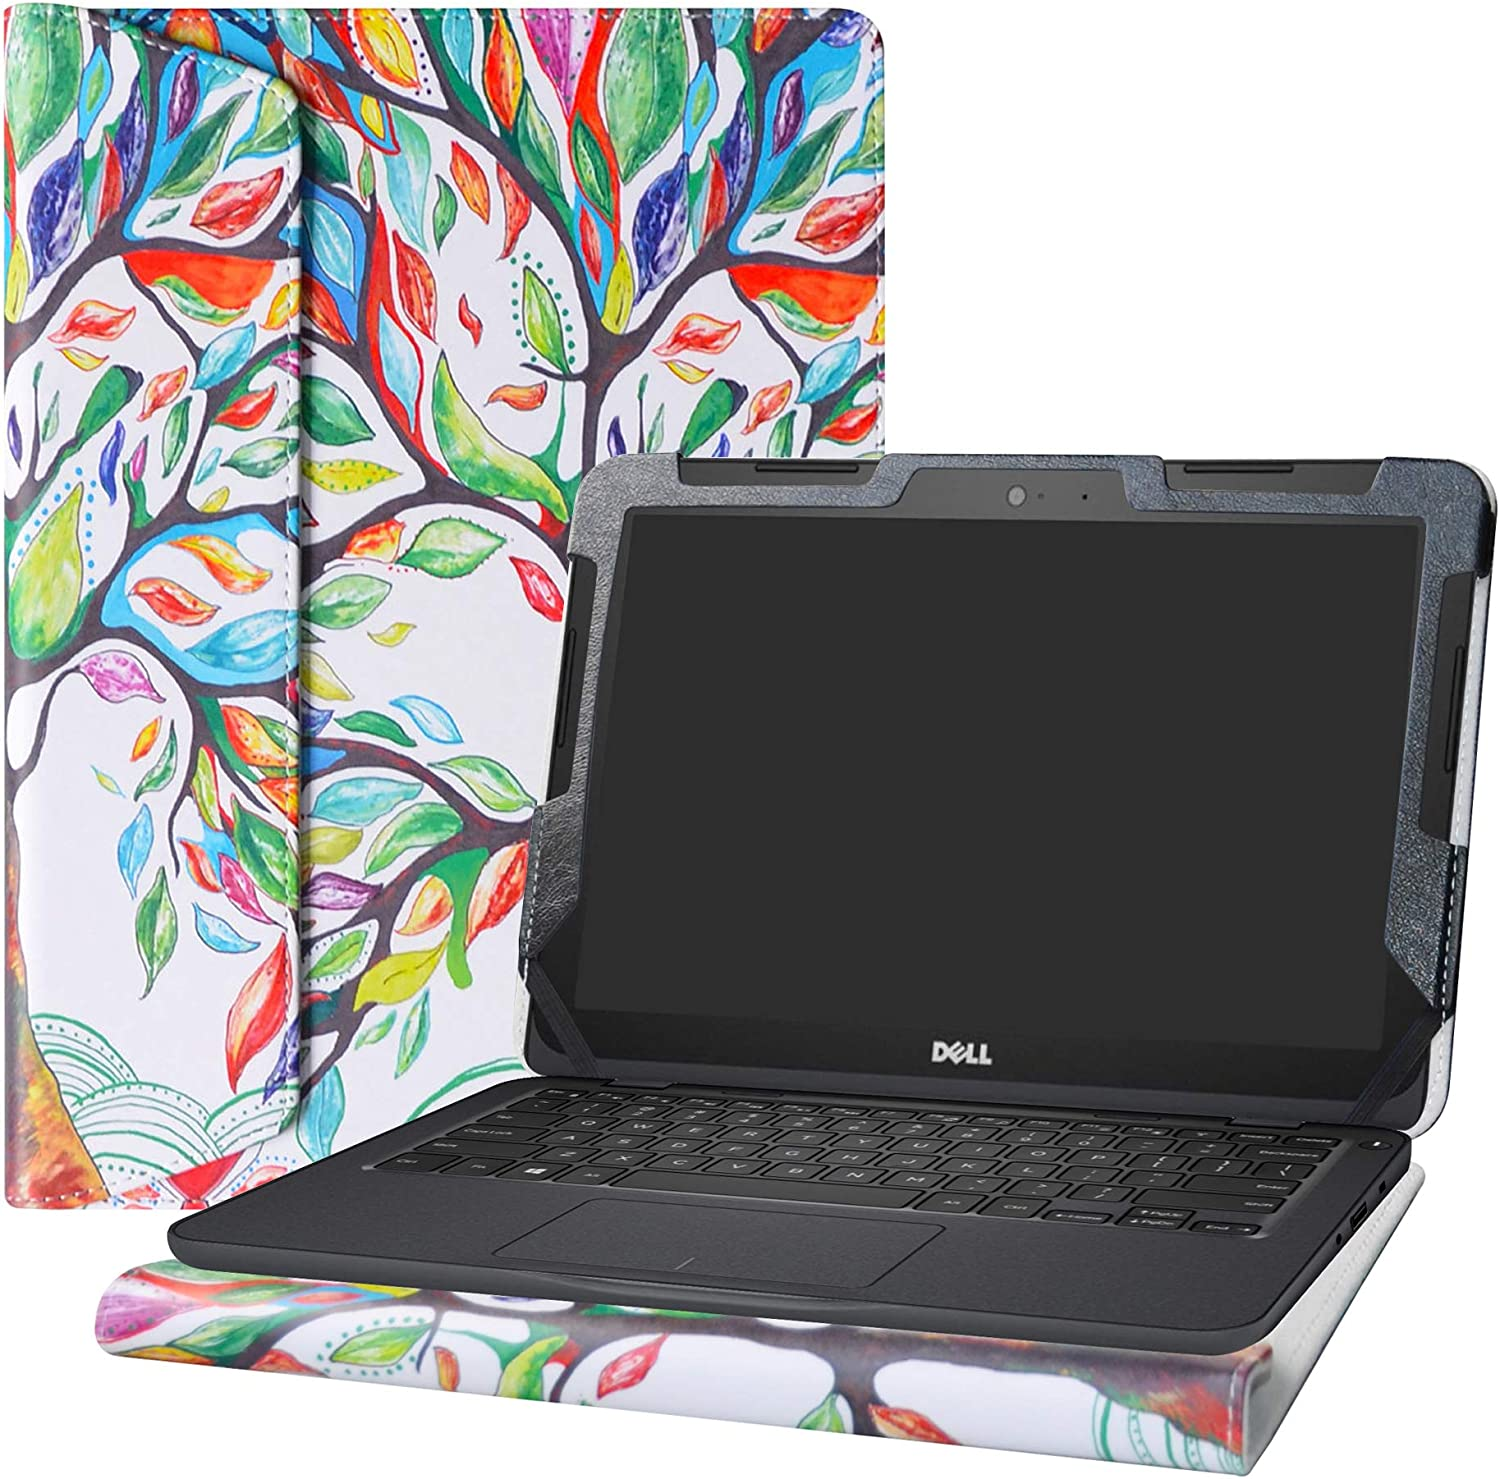 "Alapmk Protective Case for 11.6"" Dell Inspiron Chromebook 11 2-in-1 3181/Chromebook 11 3181/Chromebook 3100 Education 2-in-1 &Dell Latitude 11 2-in-1 3190 Education/3190 Education Laptop,Love Tree"